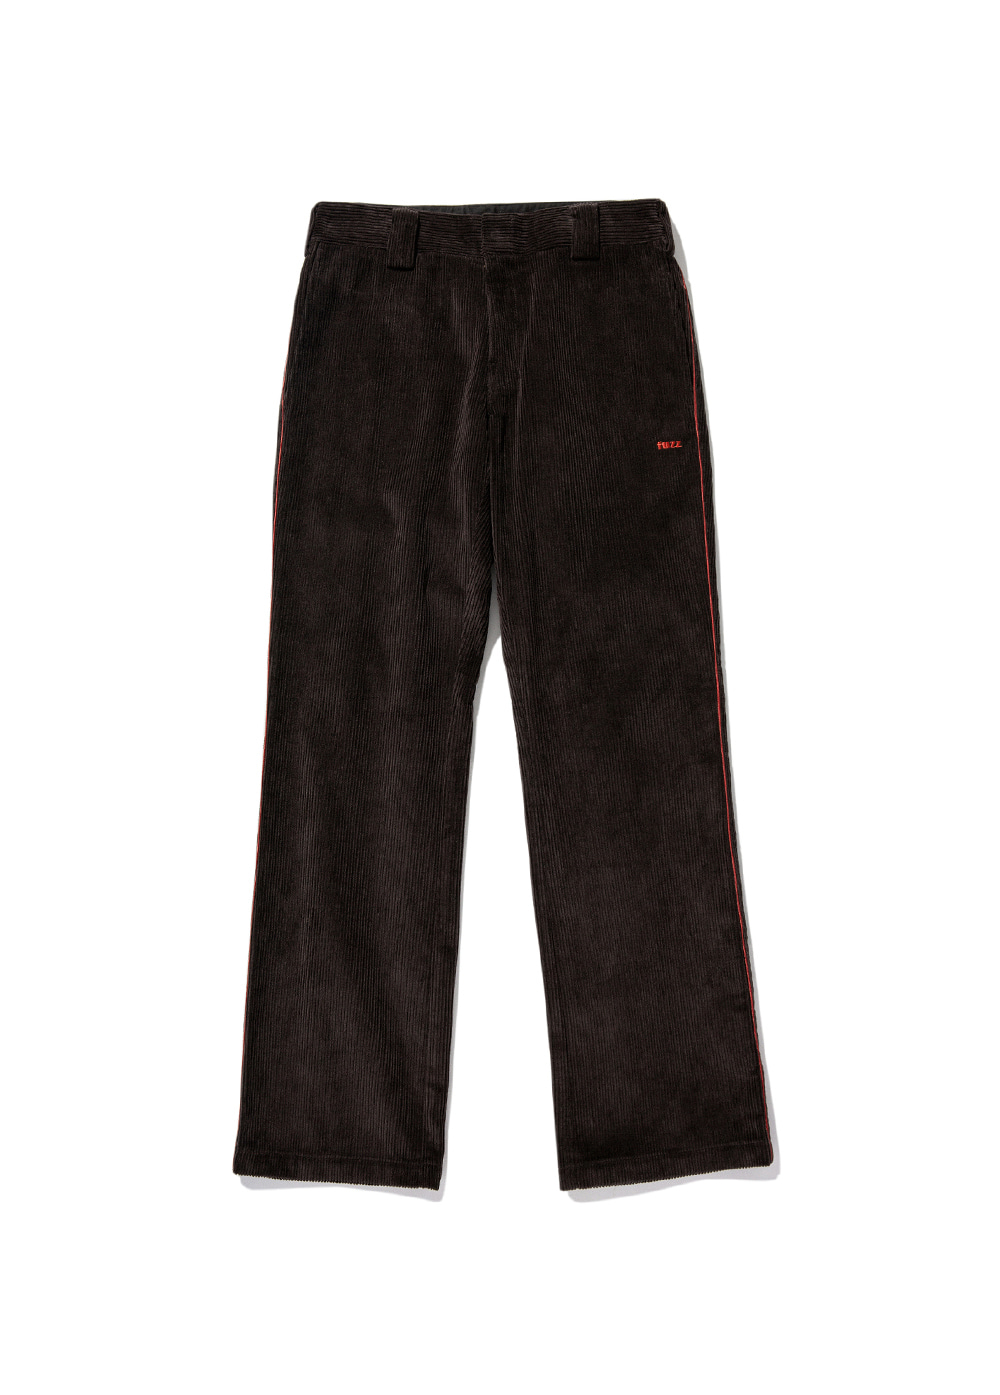 FUZZ CORDUROY BOOTCUT PANTS dark brown